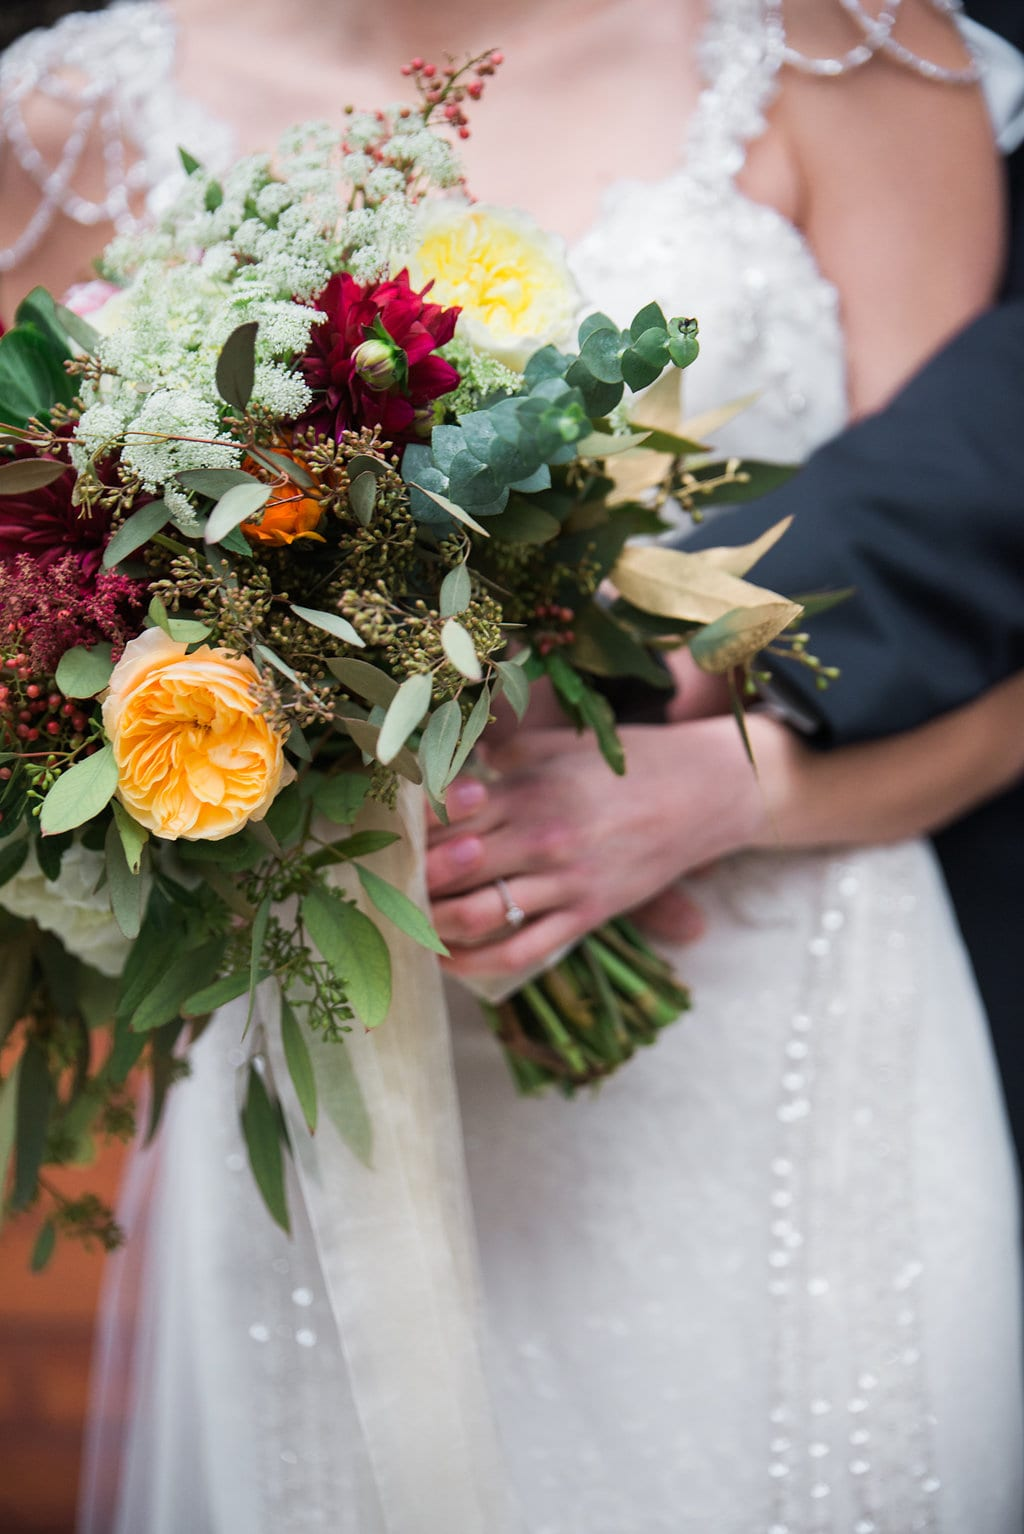 Lindsay Nicole Photography, Lowertown Event Center, wedding, winter wedding, January wedding, red wedding, wedding inspiration, wedding flowers, winter wedding floral, winter wedding flowers, winter wedding inspiration, Saint Paul wedding florist, St. Paul wedding florist, Artemisia Studios